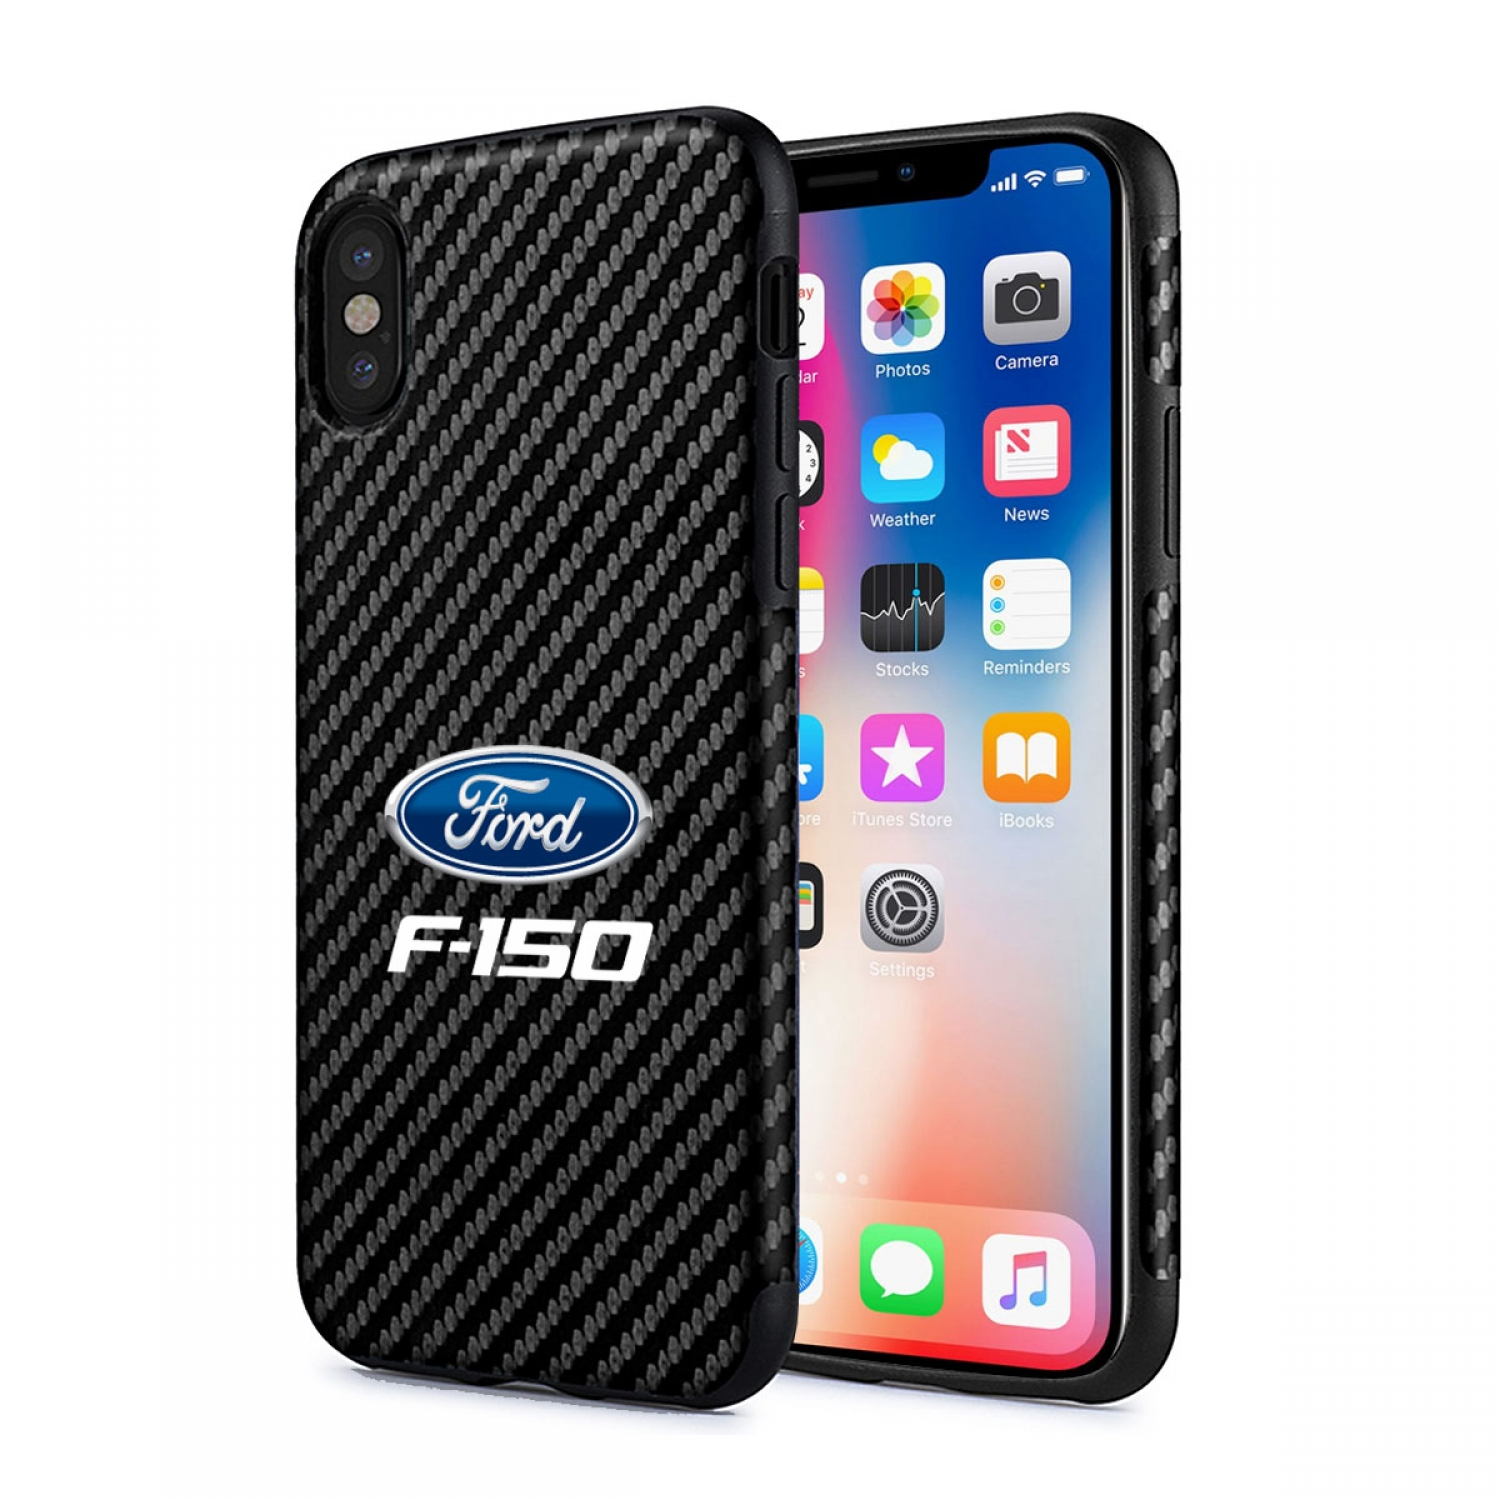 Ford F150 2015 iPhone X Black Carbon Fiber Texture Leather TPU Shockproof Cell Phone Case